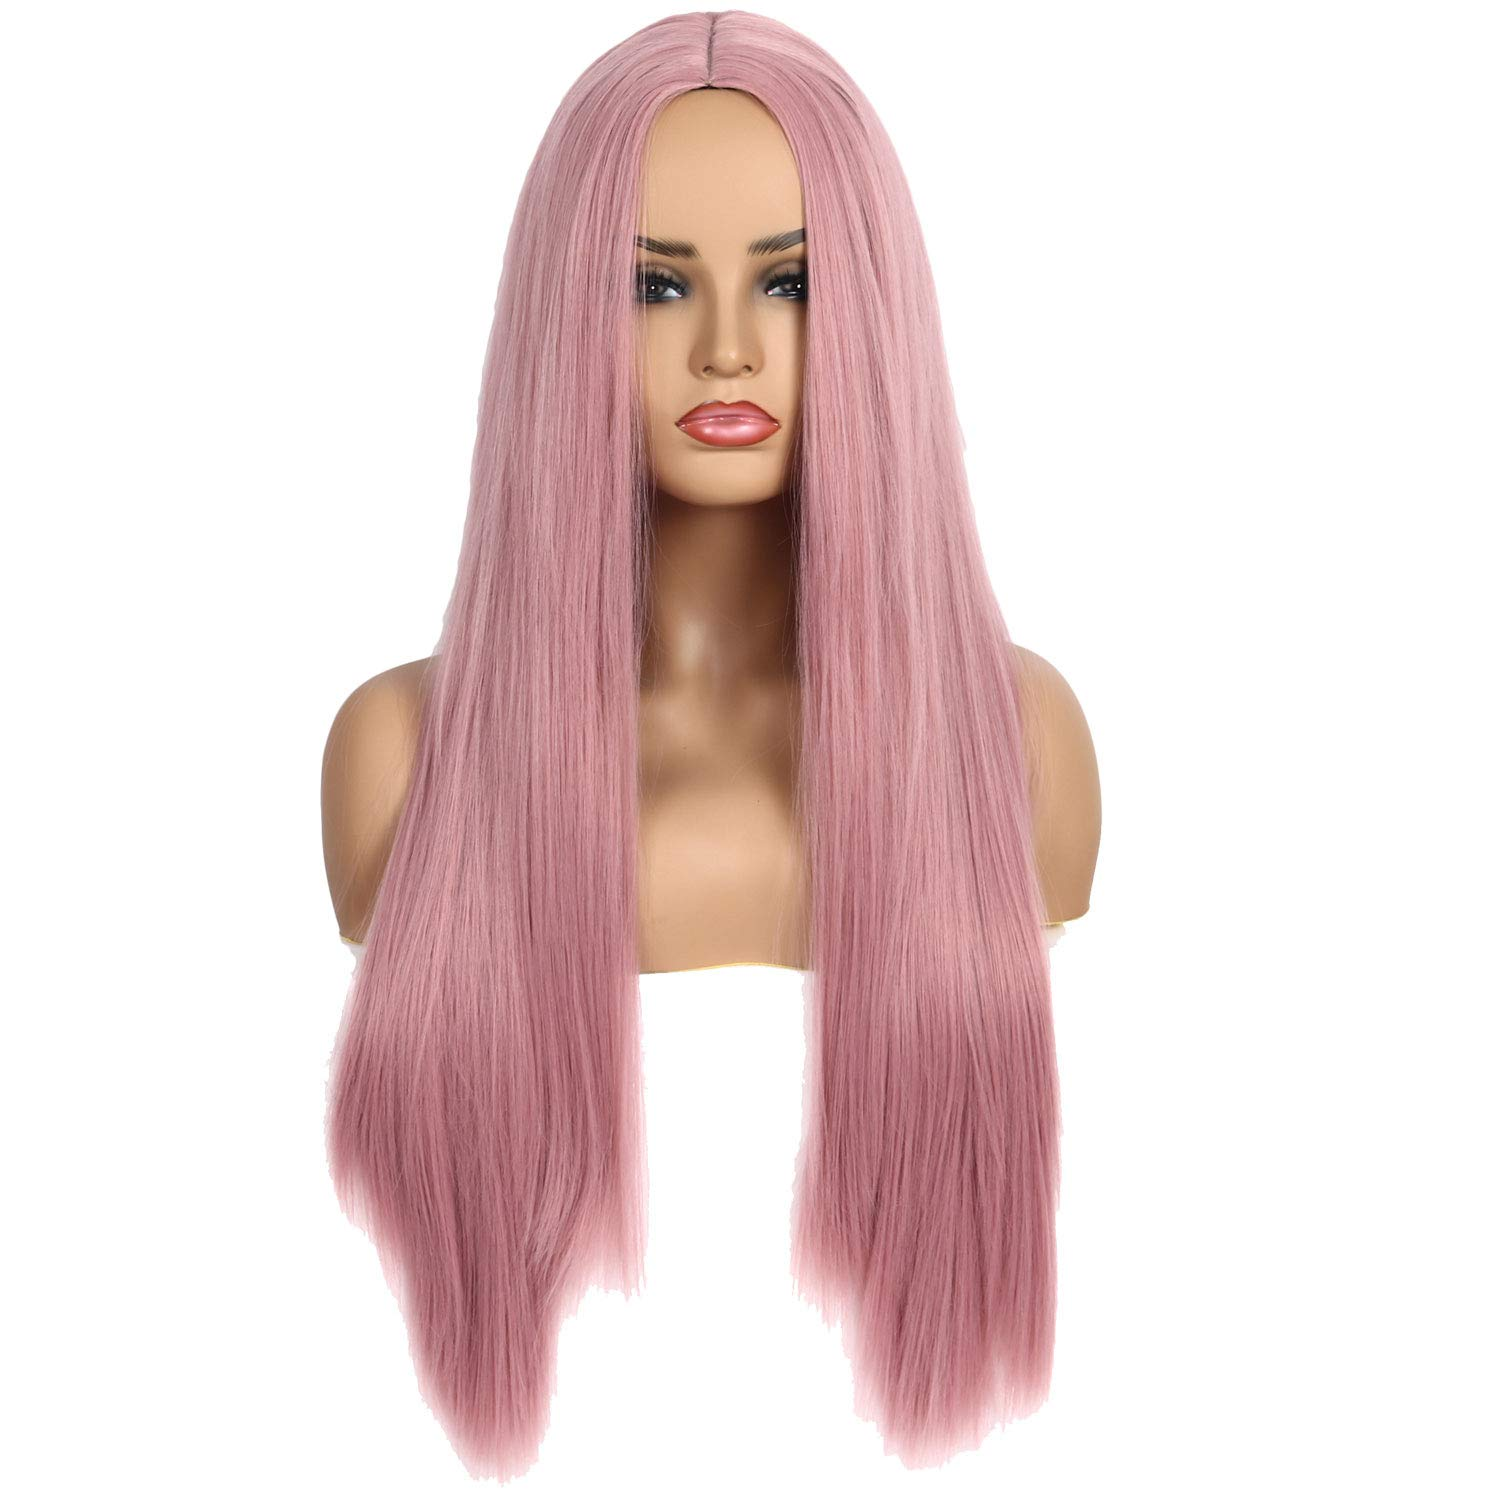 Qaccf Women's Long Straight Middle Part Synthetic